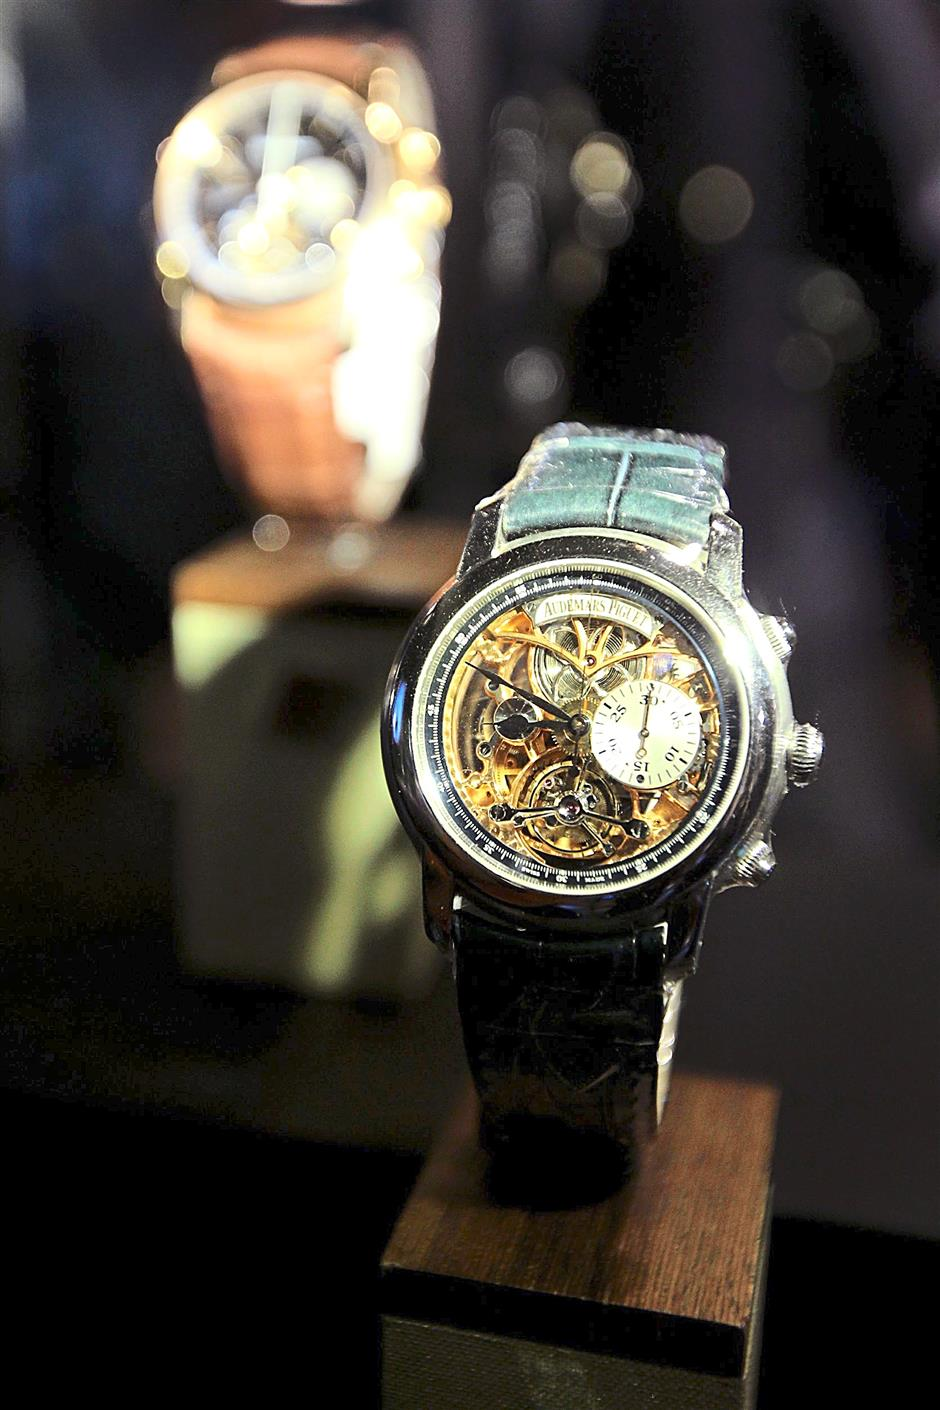 Audemars Piguet tourbillon timepieces on display at the launch of the 100 Tourbillons exhibition at Sincere Fine Watches, Suria KLCC on Oct 8. GLENN GUAN/The Star